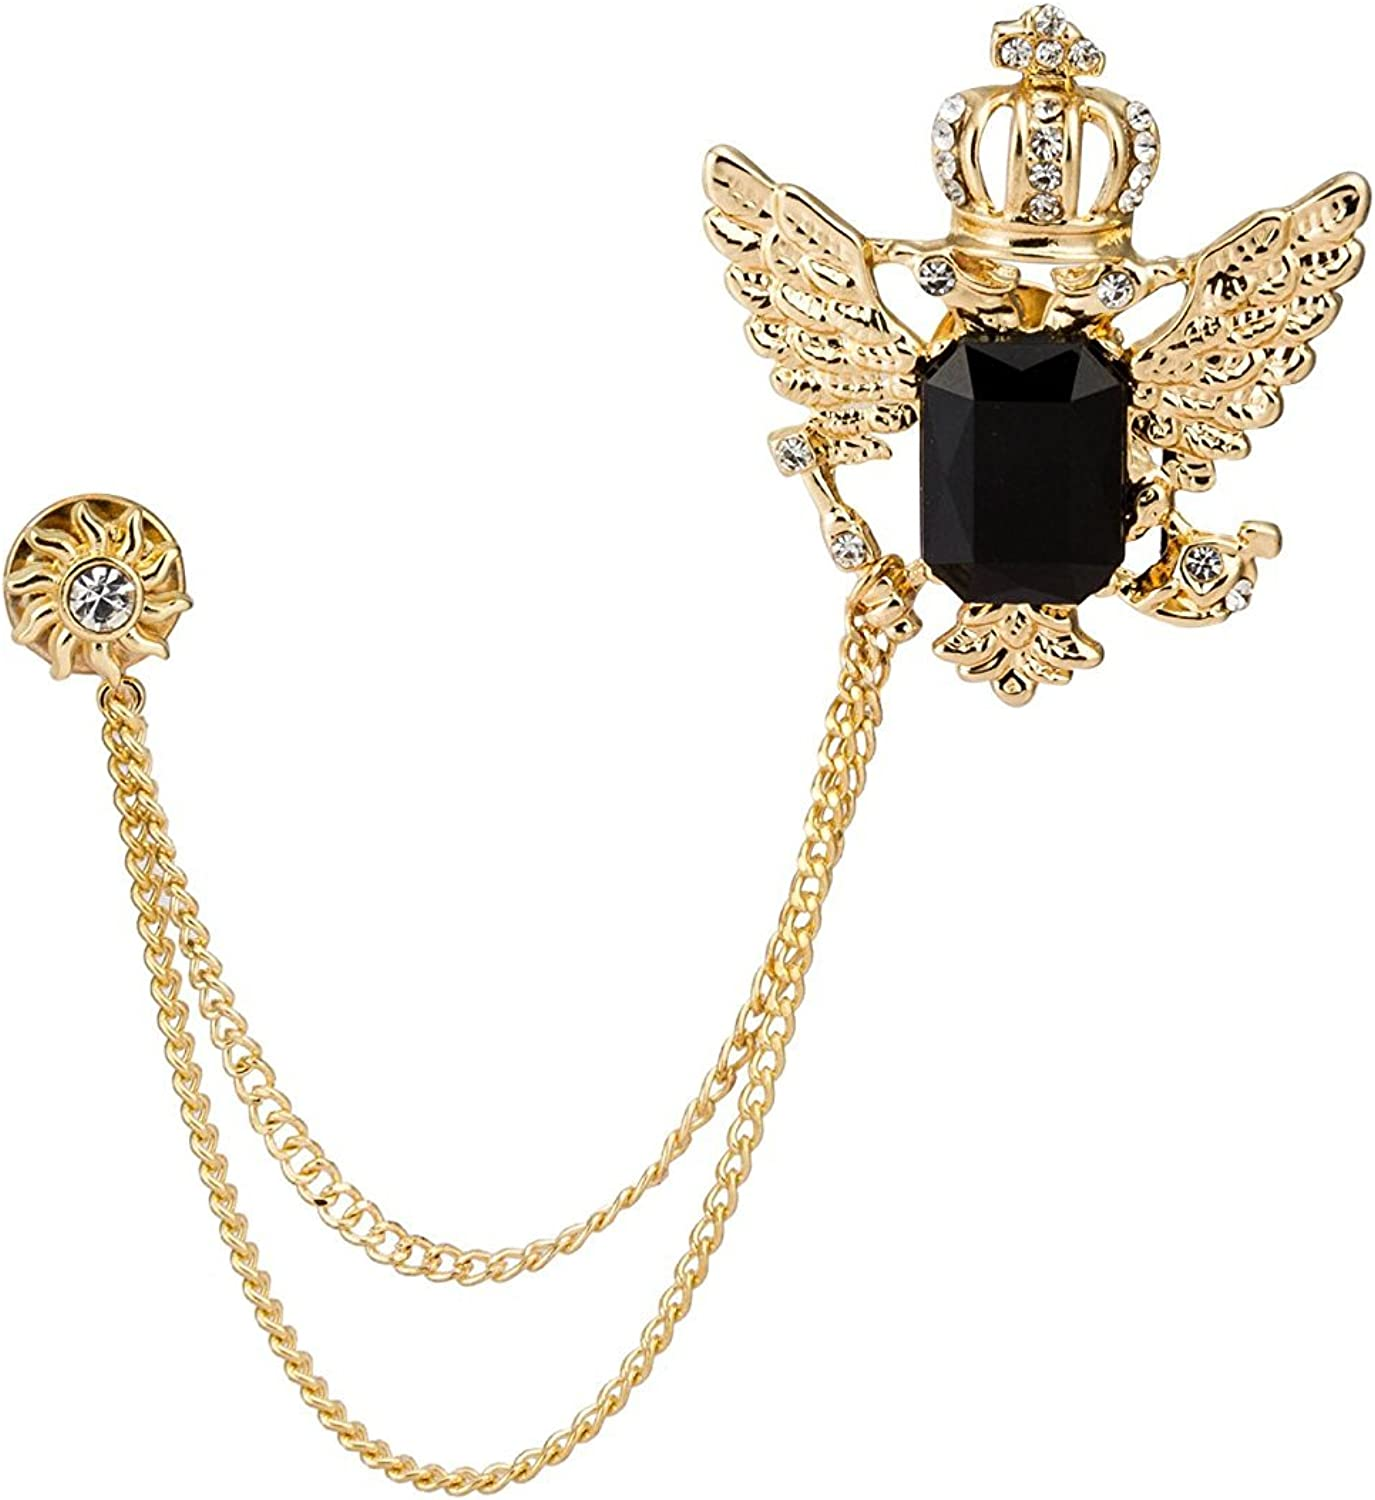 Knighthood Mens Golden Crown Stone with Hanging Chain Brooch Golden